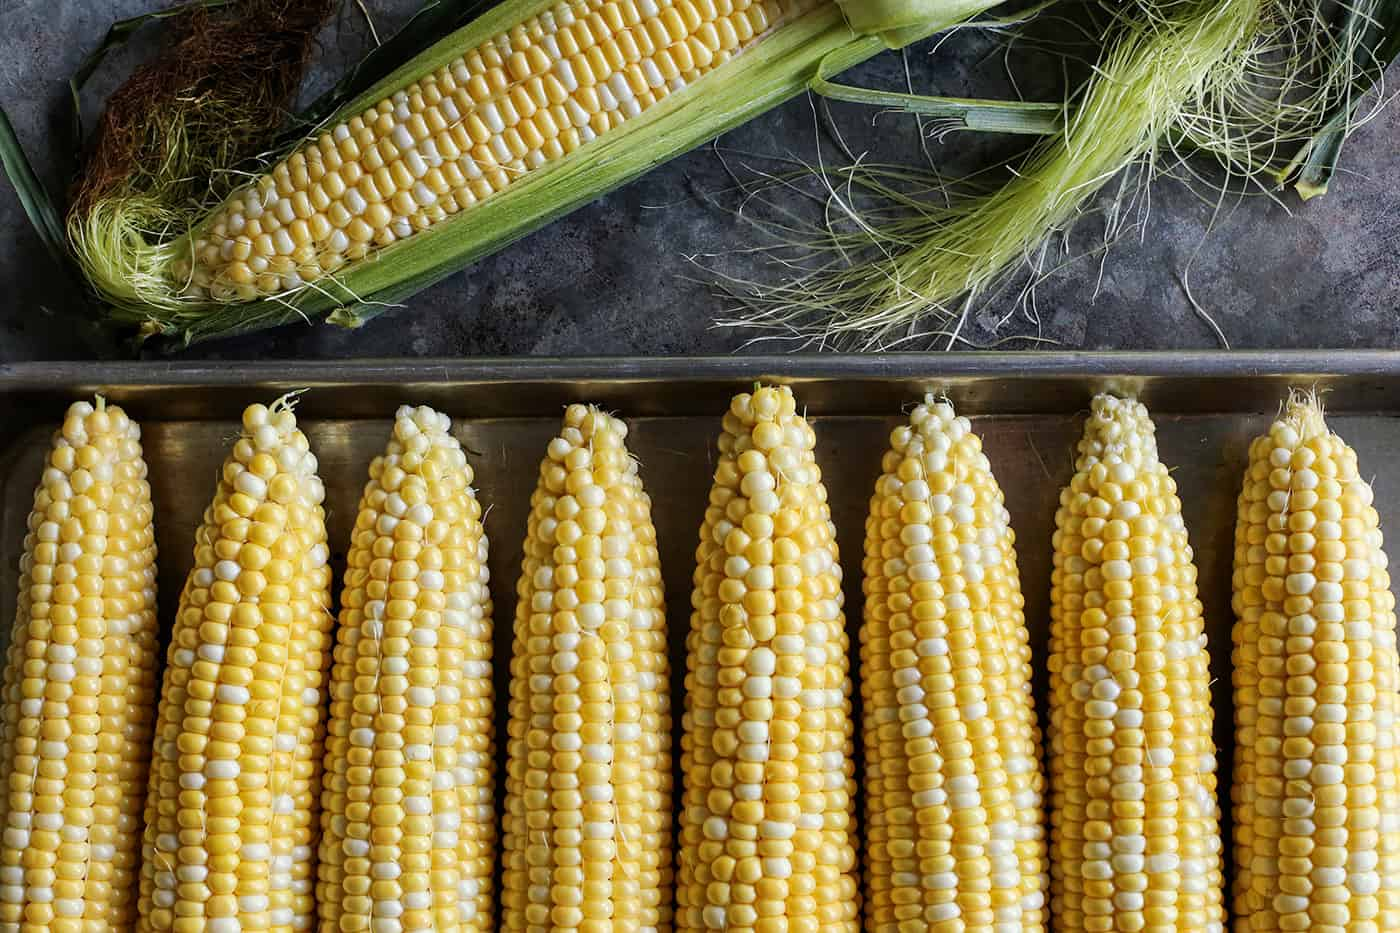 a pan of husked sweet corn plus an ear of corn that is halfway husked